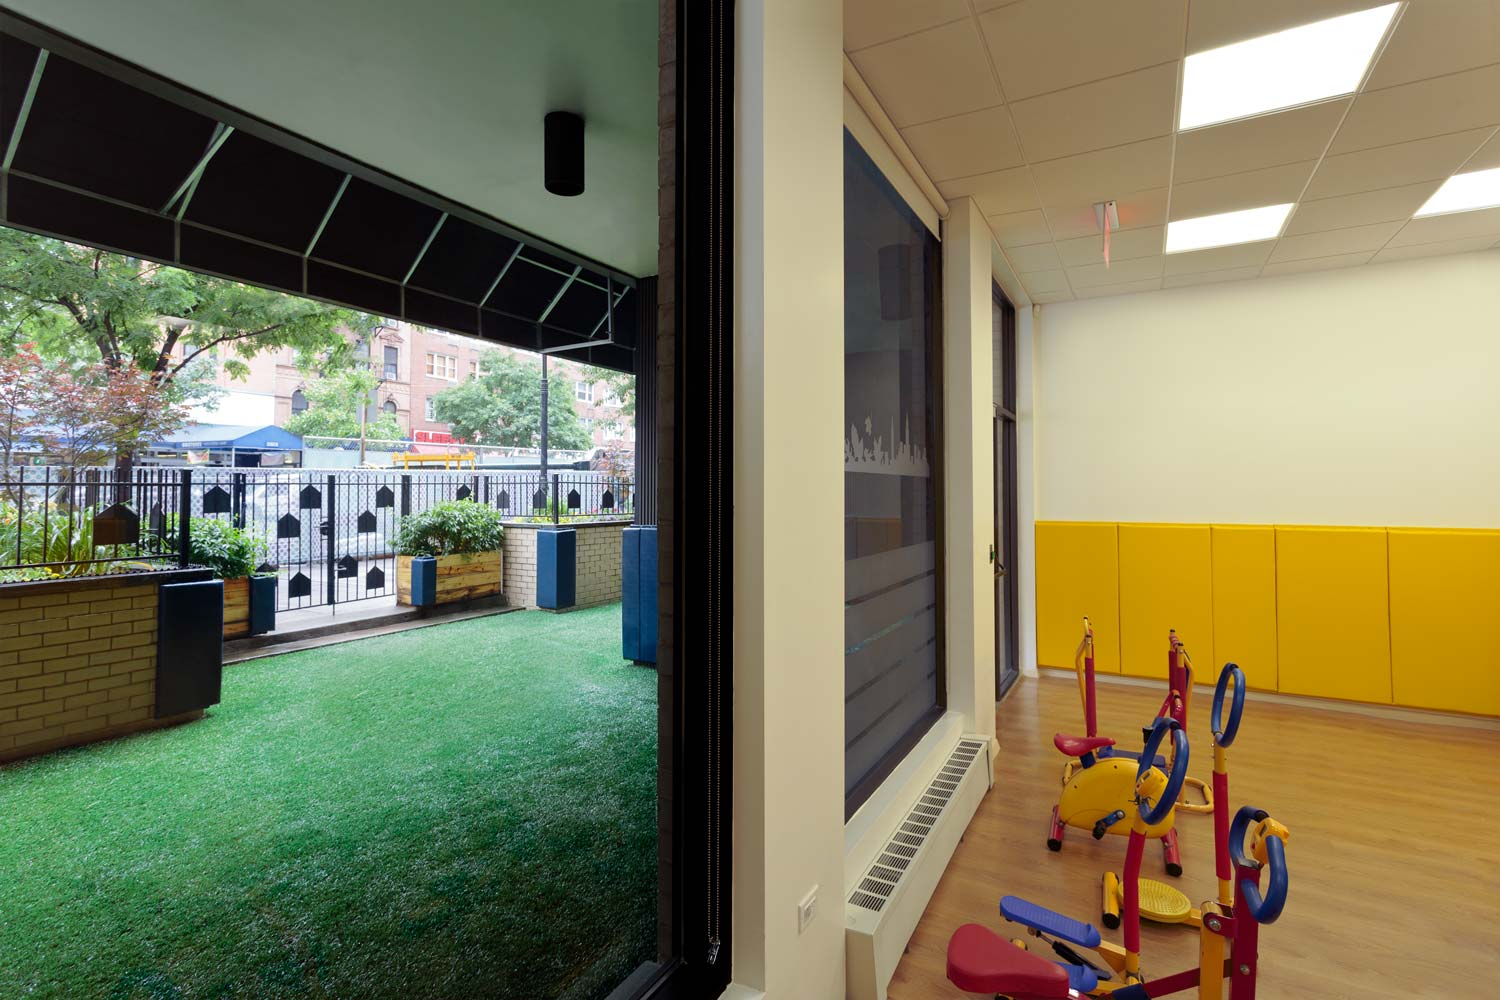 The International Preschools playroom with access to an outdoor area.